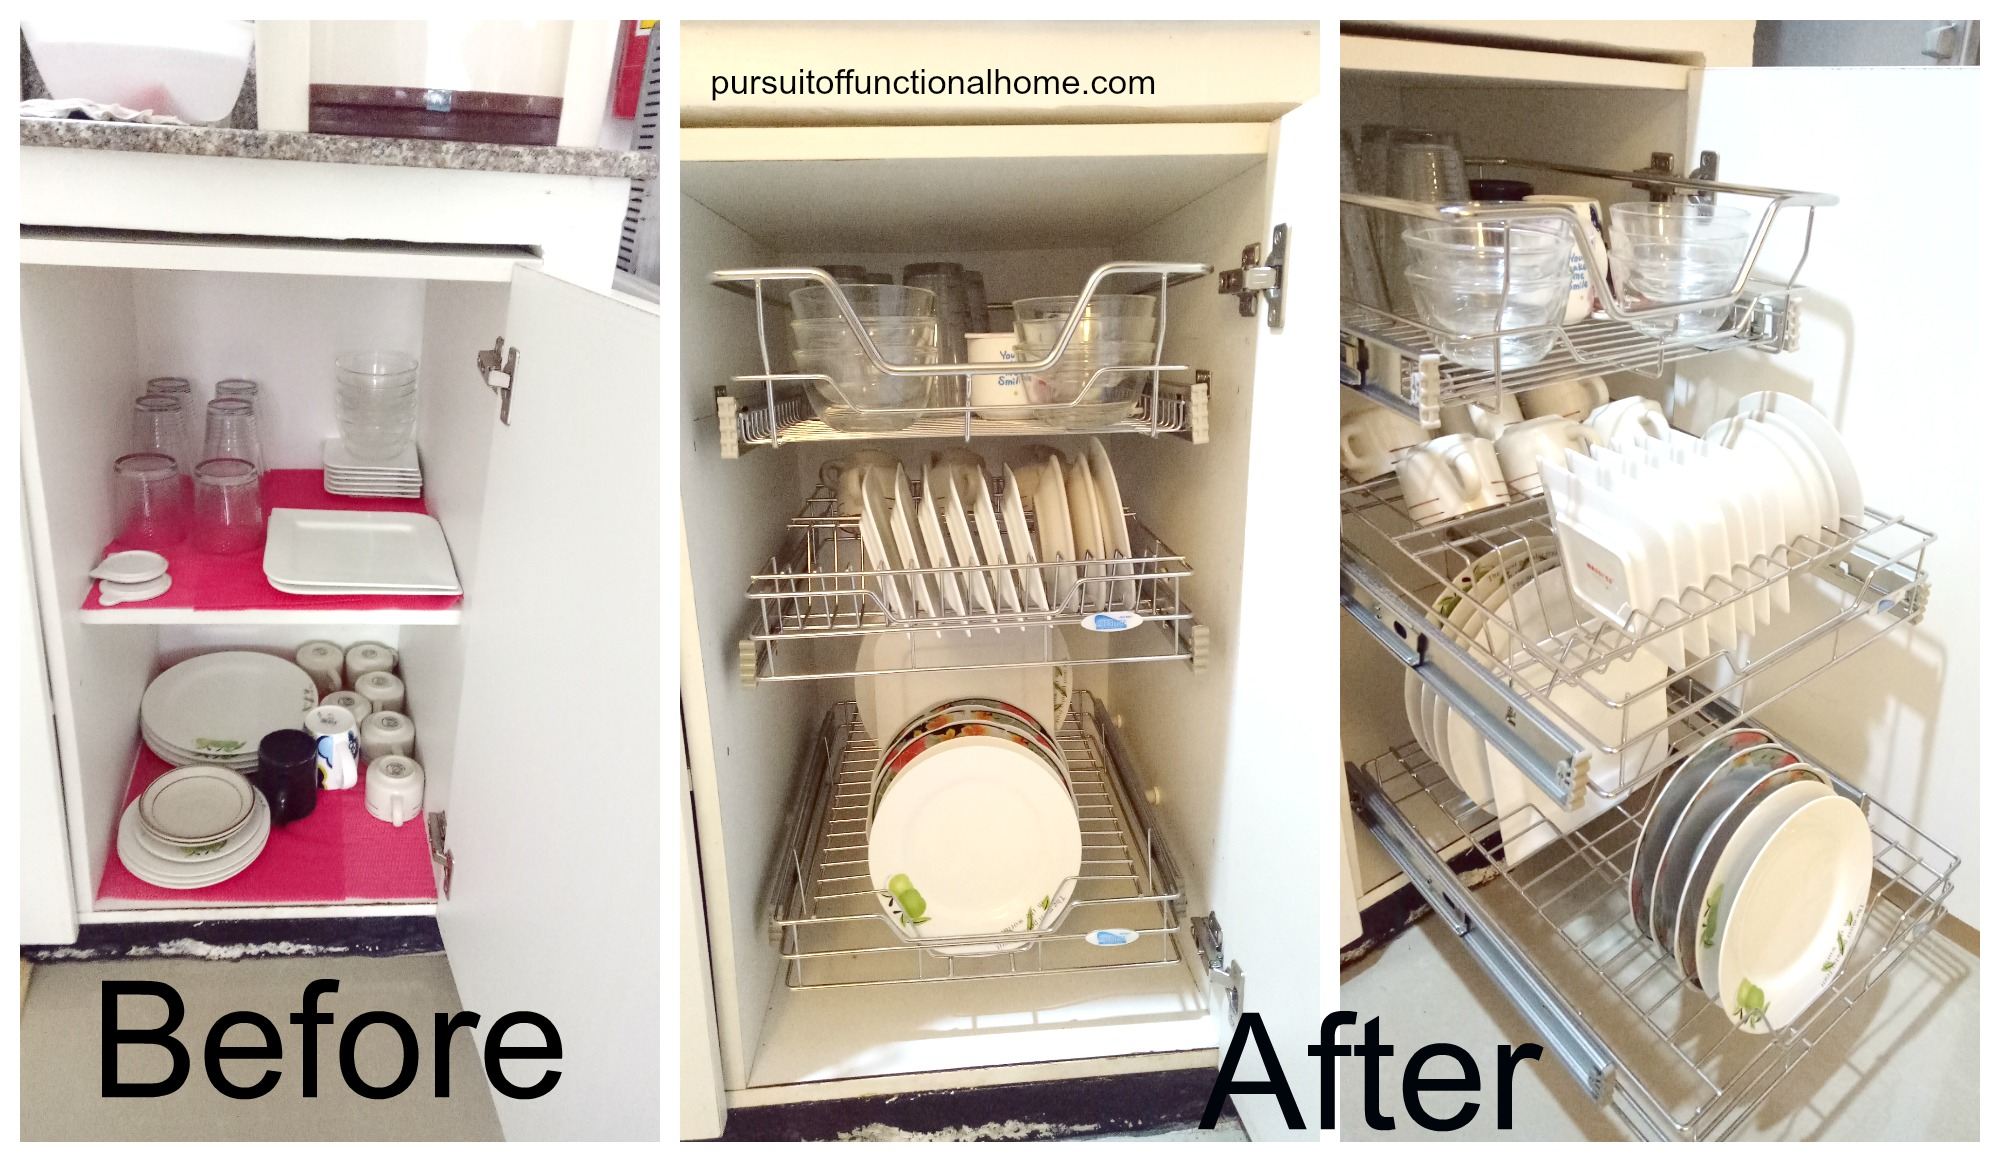 kitchen cabinets organizers ikea metal shelves pull out wire rack  pursuit of functional home